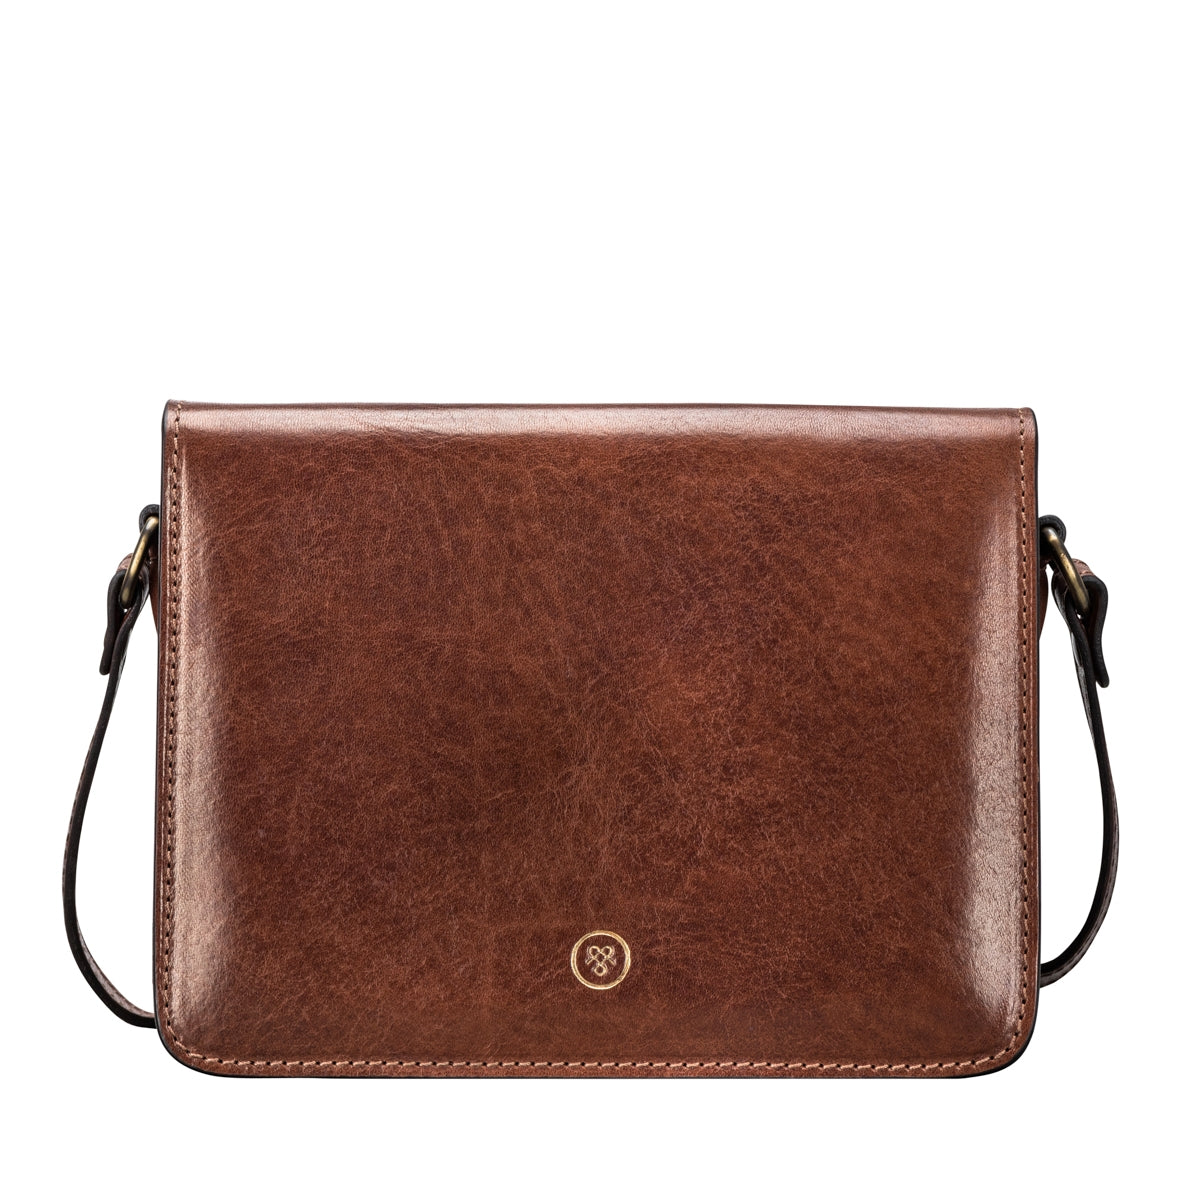 Image 1 of the 'Lucca' Small Chestnut Veg-Tanned Leather Handbag